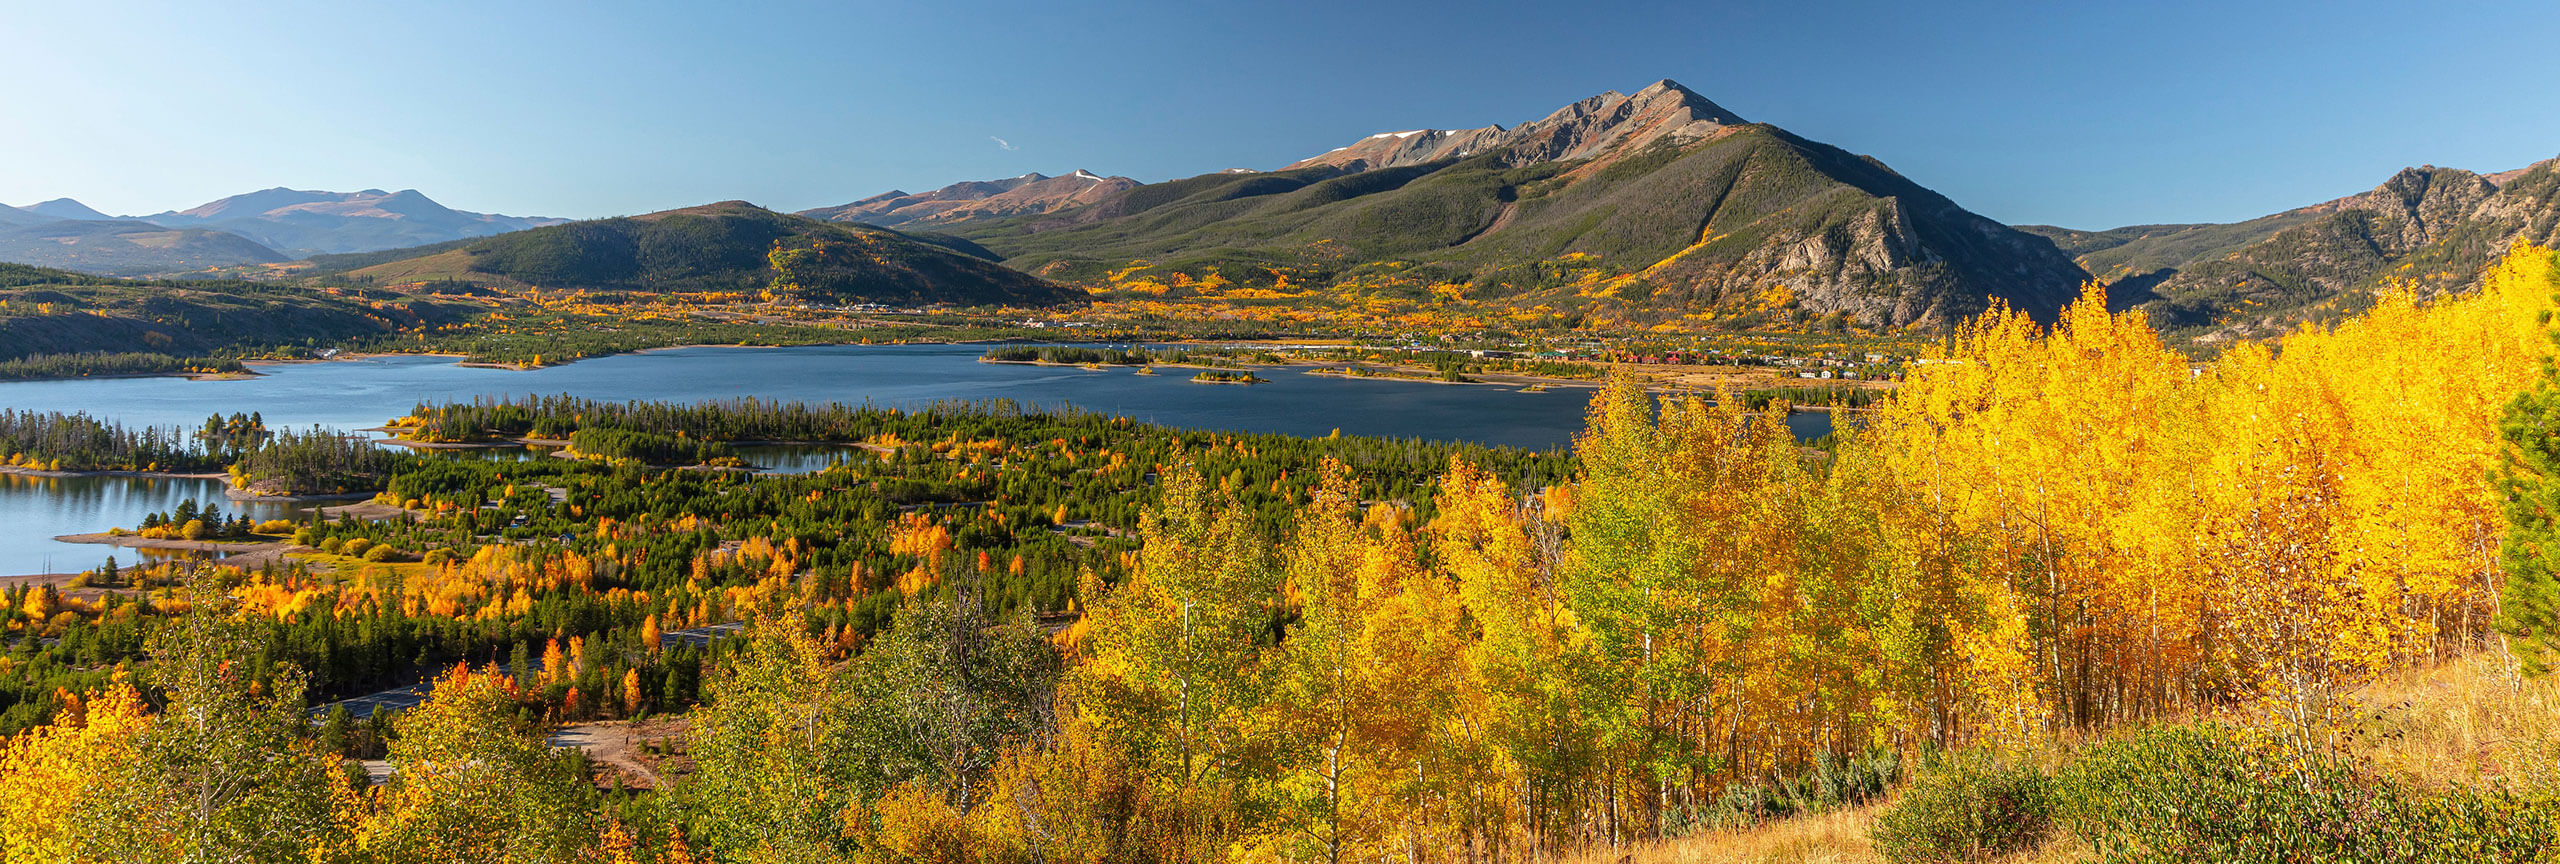 Scenic view of Lake Dillon and the Tenmile Range with yellow aspens in the foreground.